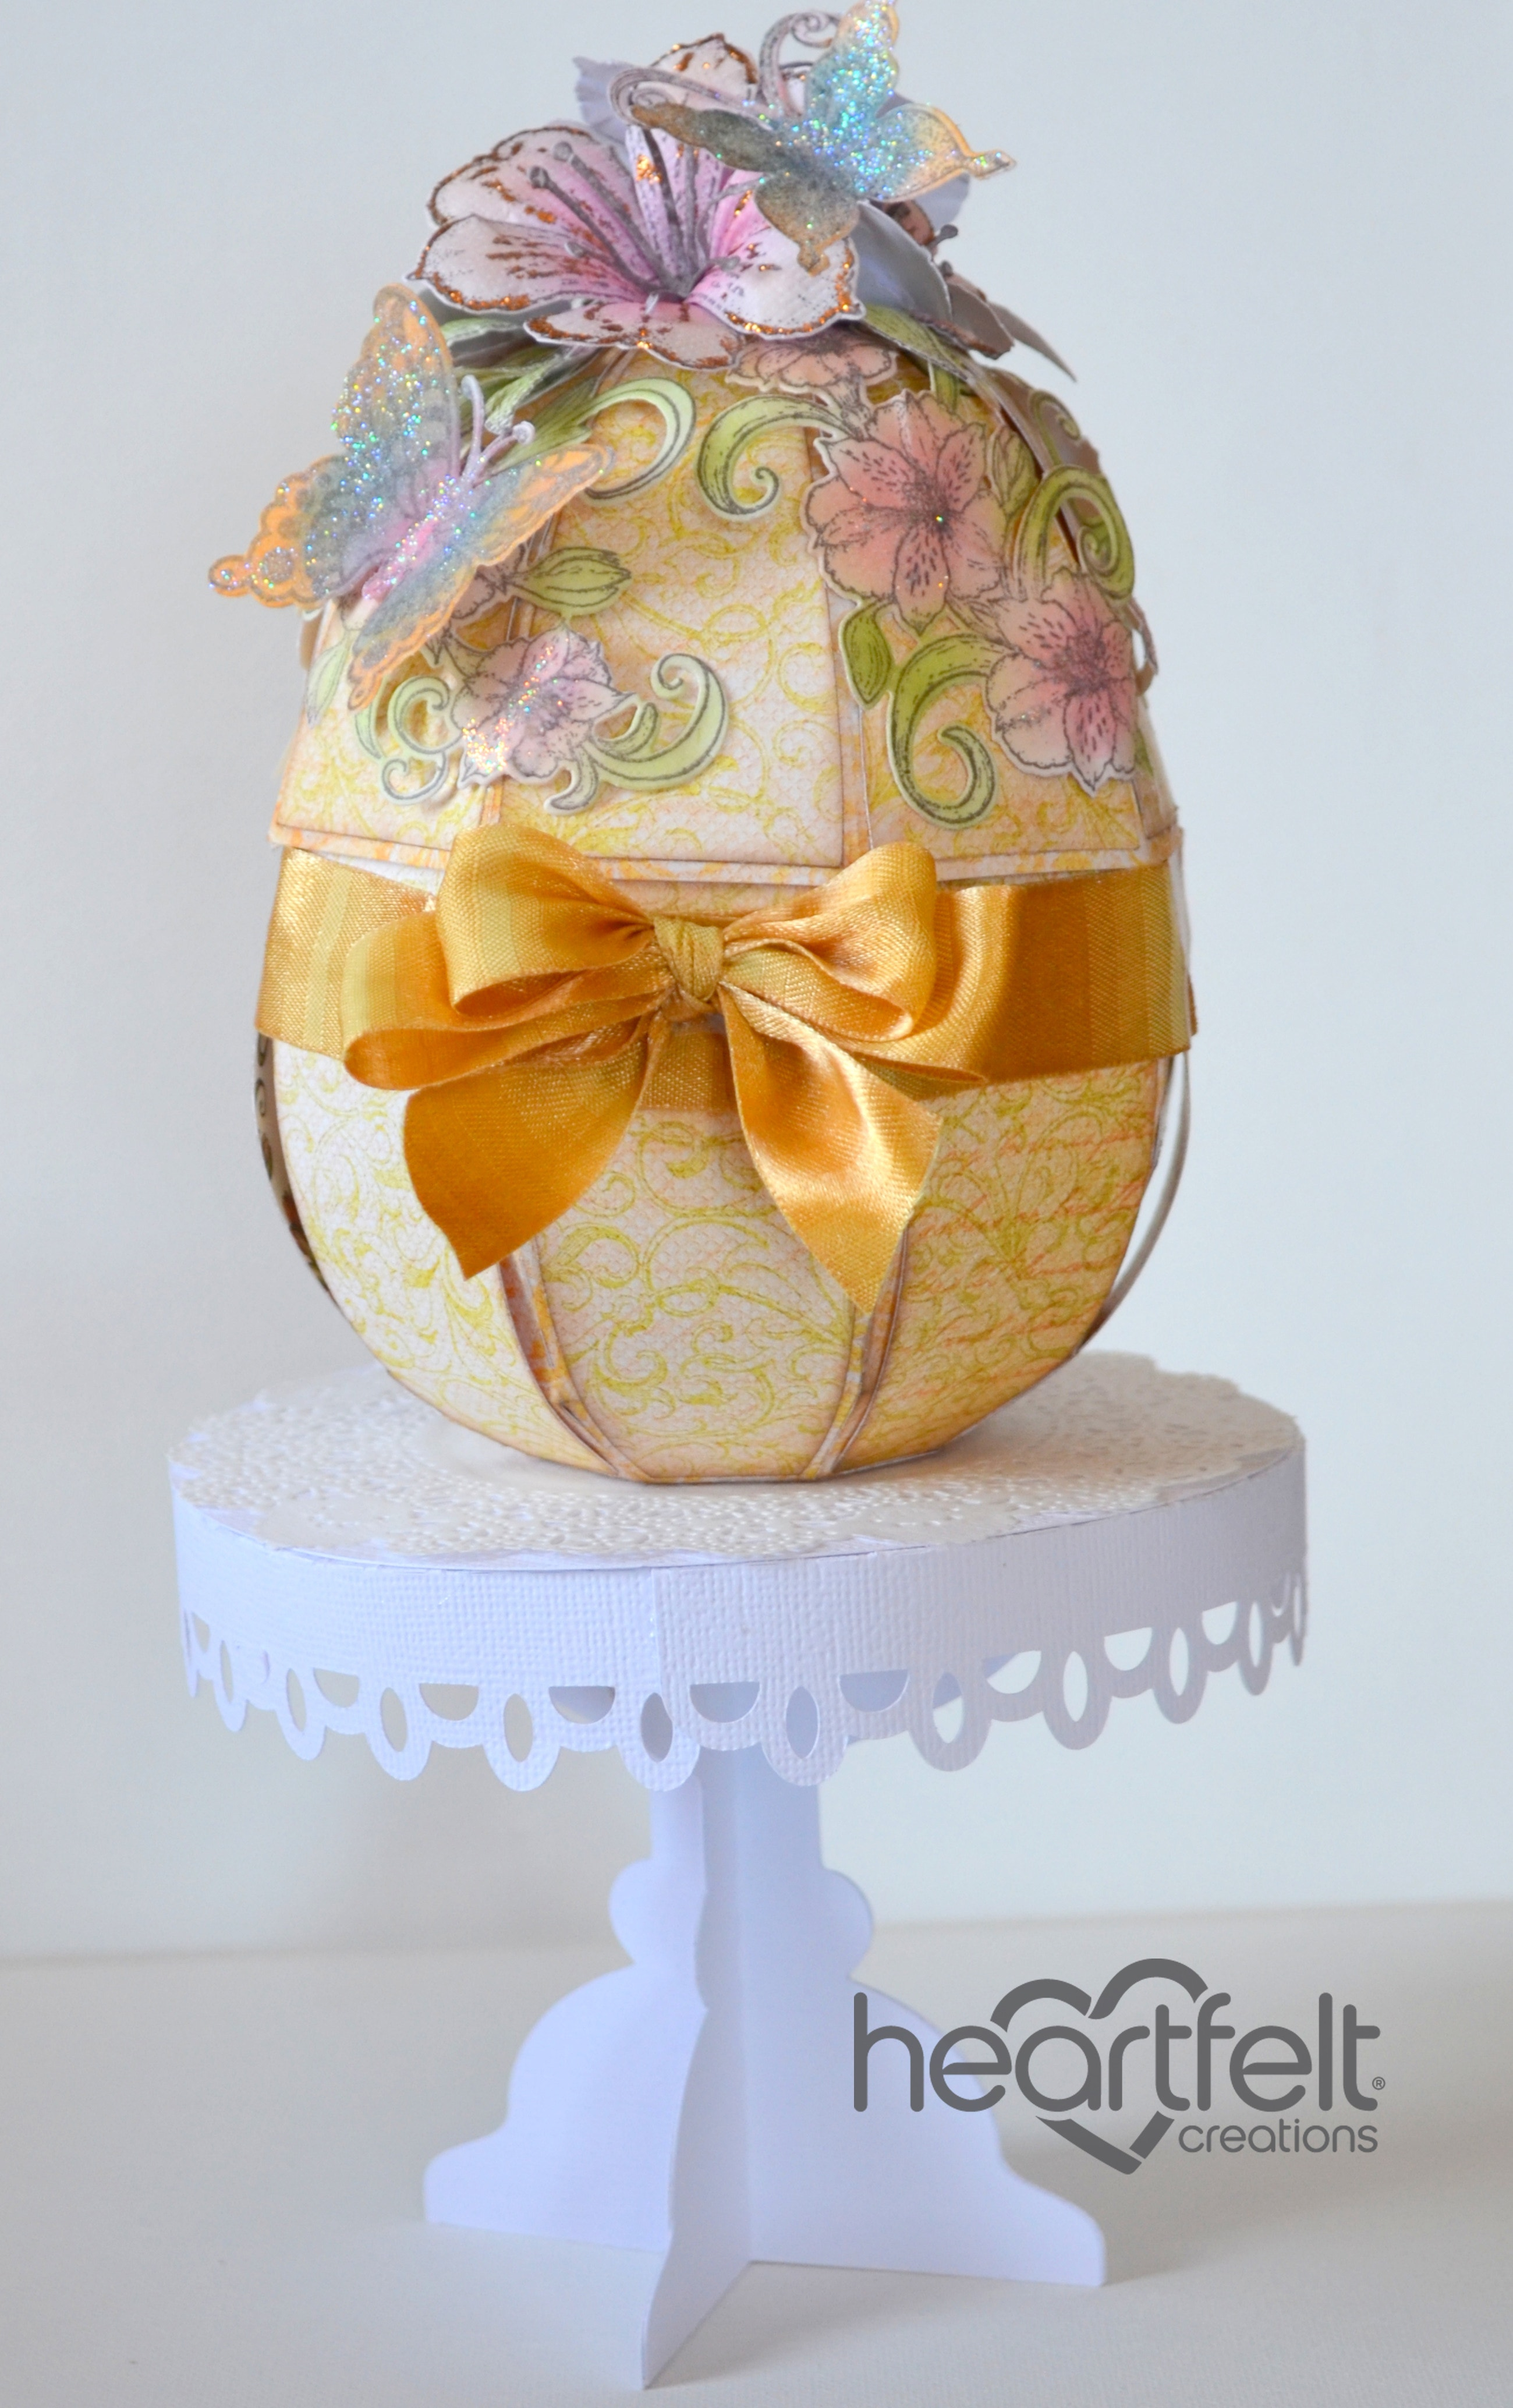 Gallery sunrise lily easter egg gift box heartfelt creations using an electronic die cutting machine cut out egg and pedestal base using white card stock assemble according to cutting file instructions negle Choice Image